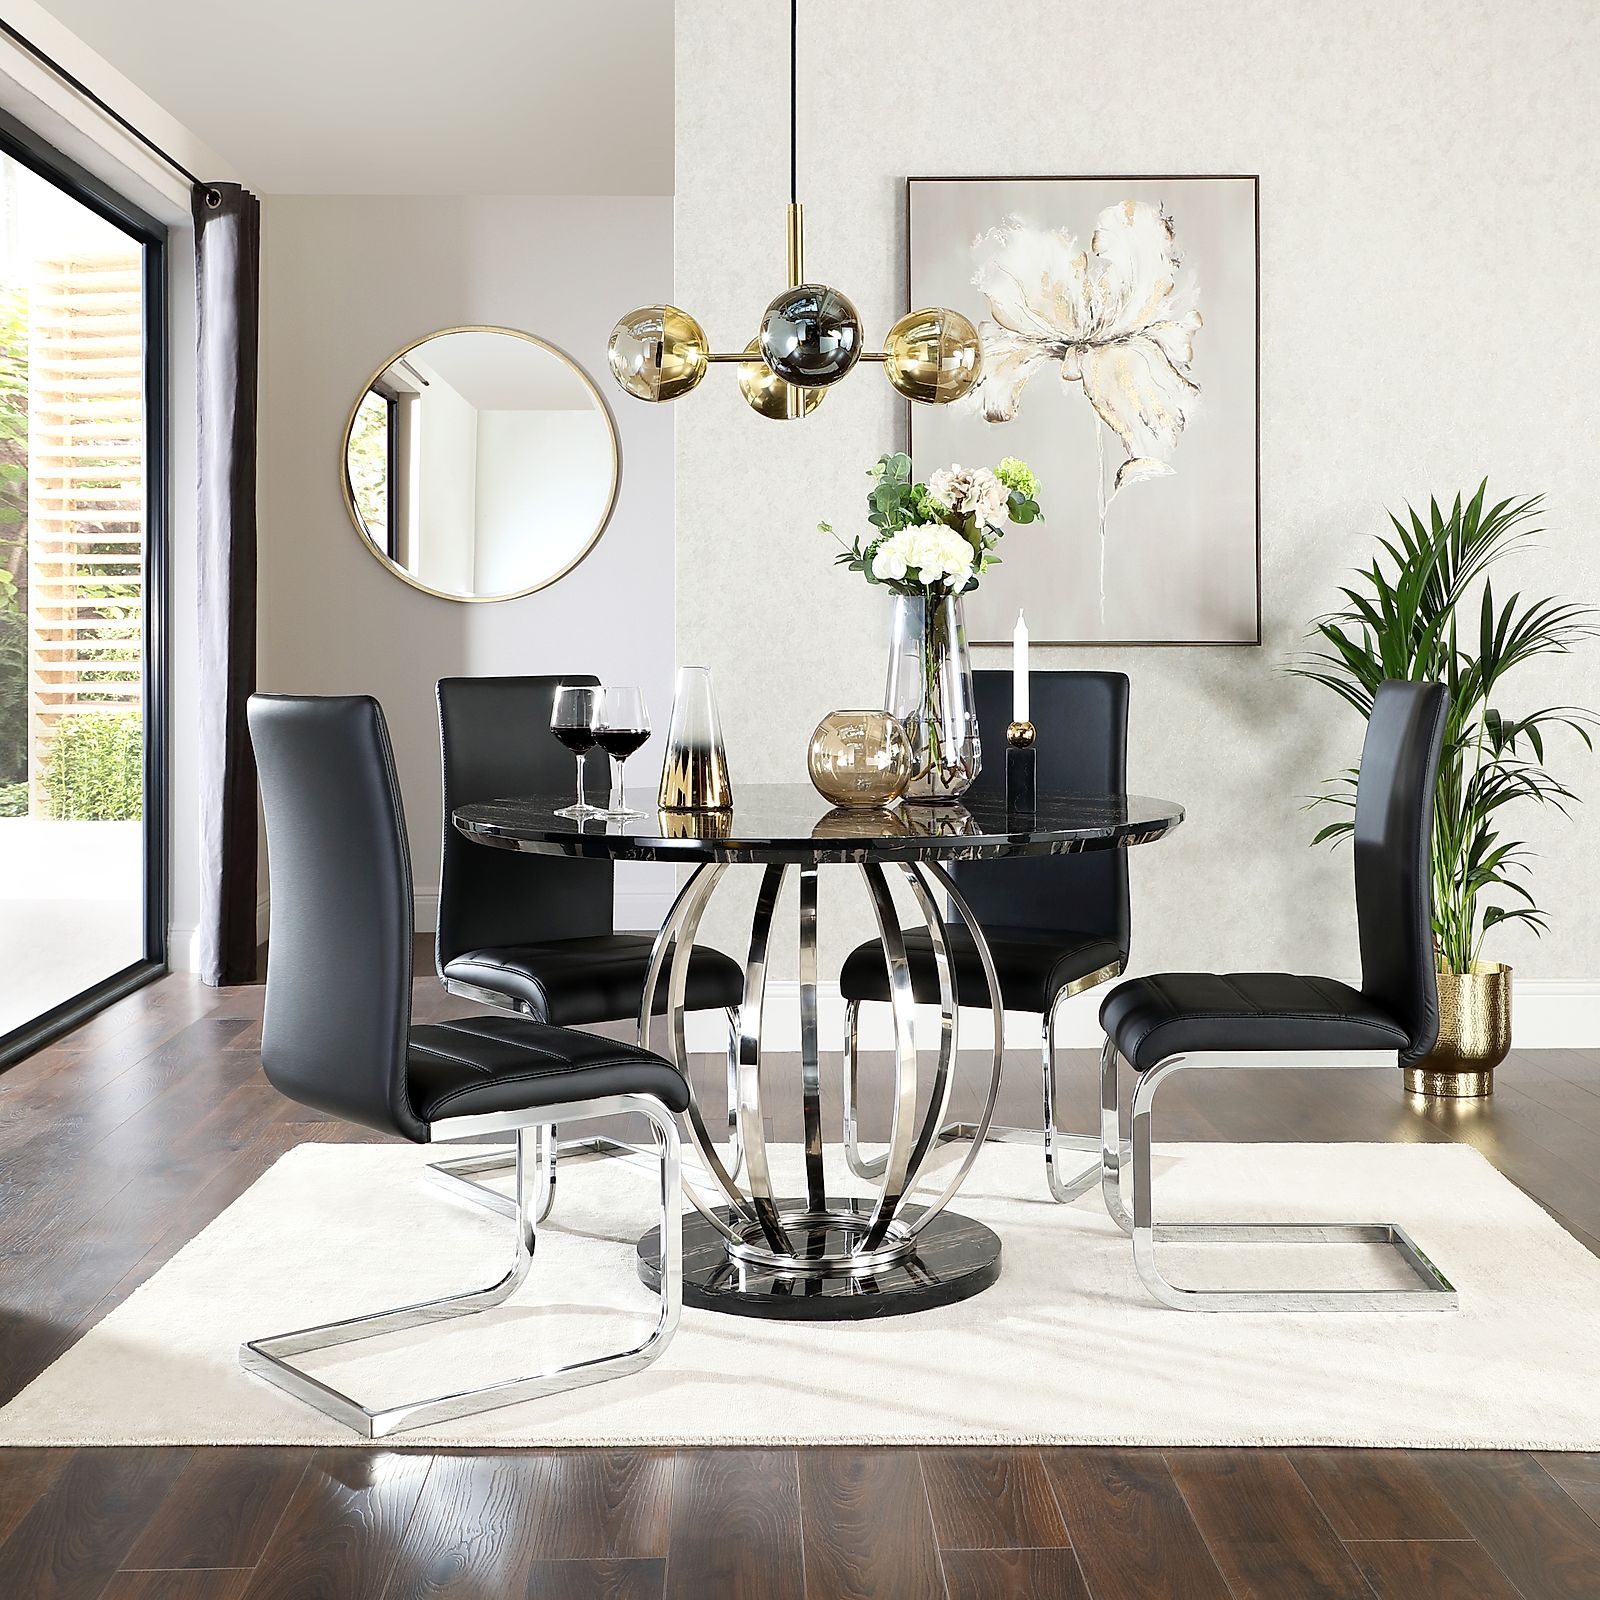 Savoy Round Black Marble And Chrome Dining Table With 4